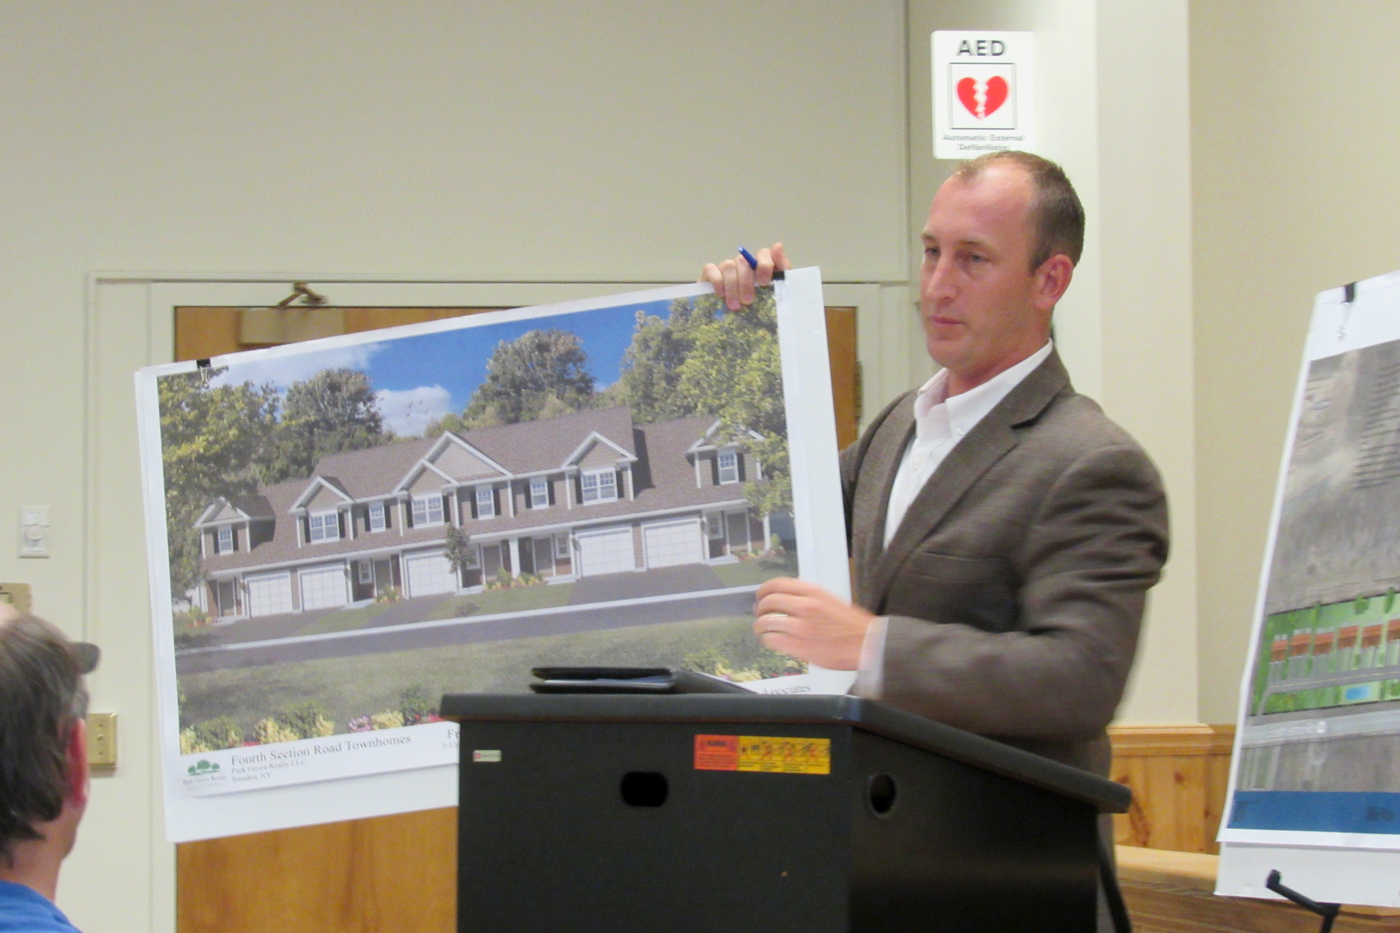 Jess Sudol, PE, of Passero Associates in Rochester, holds a concept elevation of what apartments proposed at the intersection of Fourth Section and Redman Roads in the Town of Sweden would look like.  Sudol spoke during a public hearing at the Sweden Town Hall July 25. K. Gabalski photo